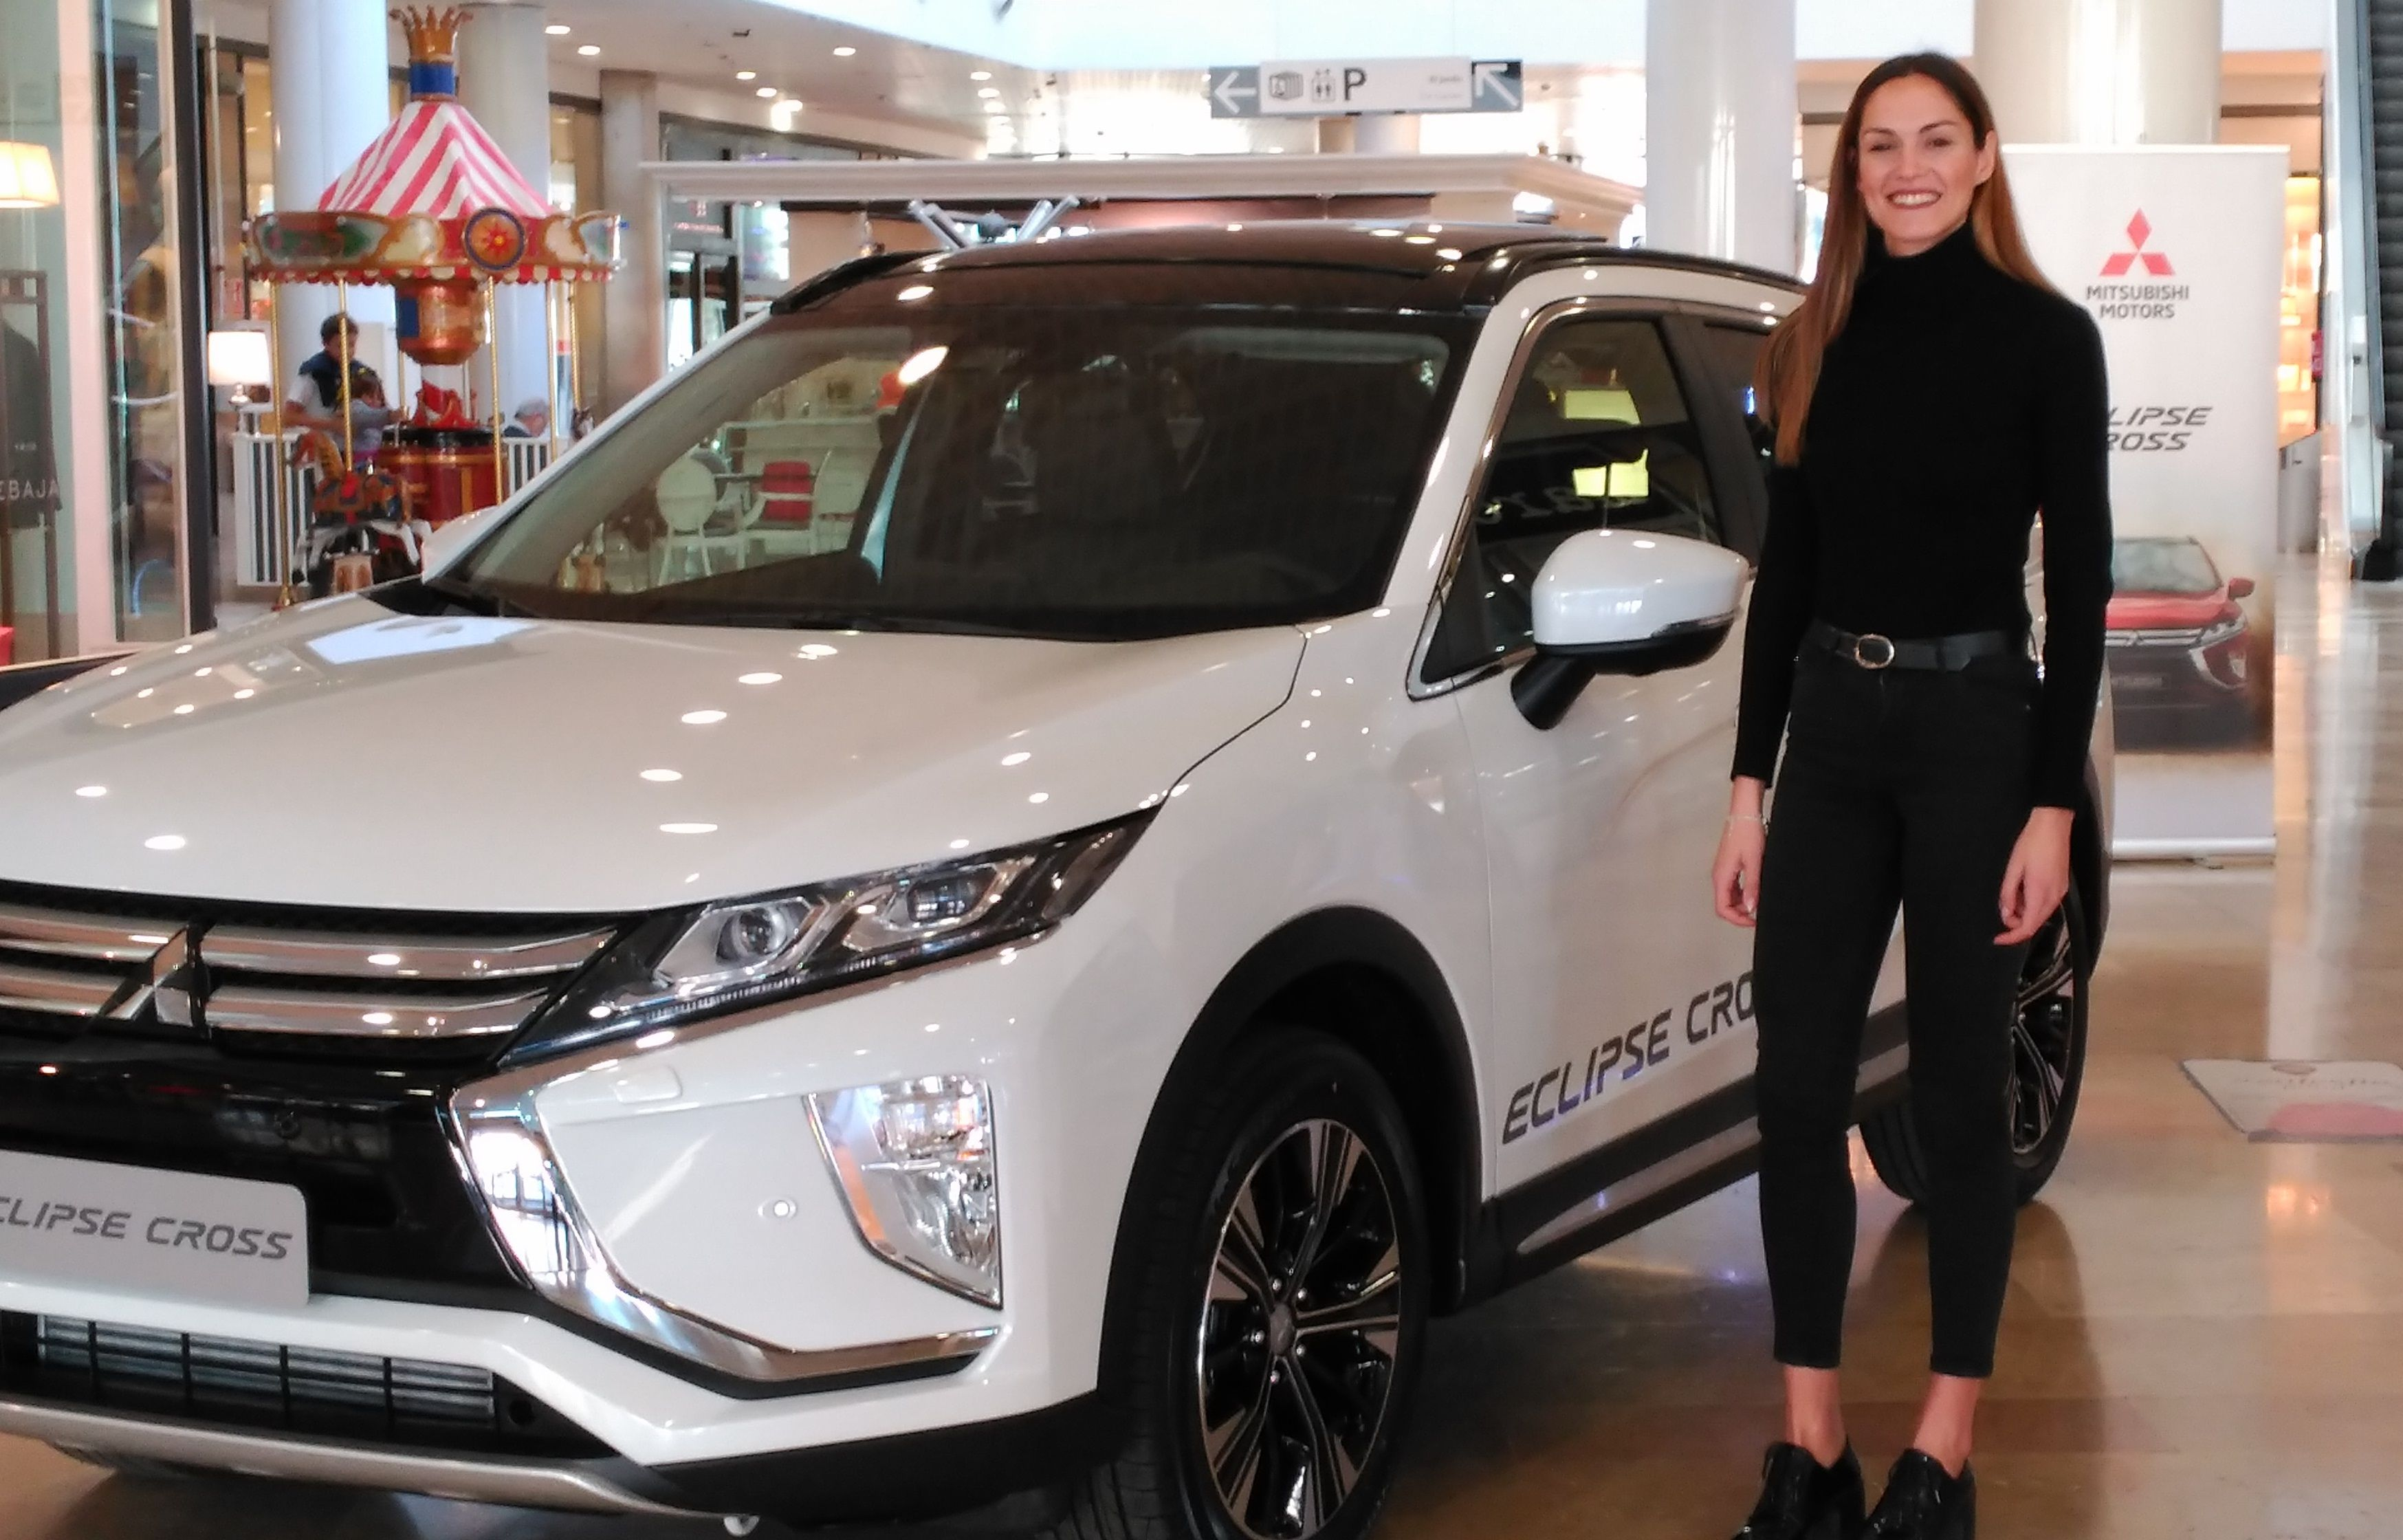 NUEVO ECLIPSE CROSS EN C.C MORALEJA-GREEN